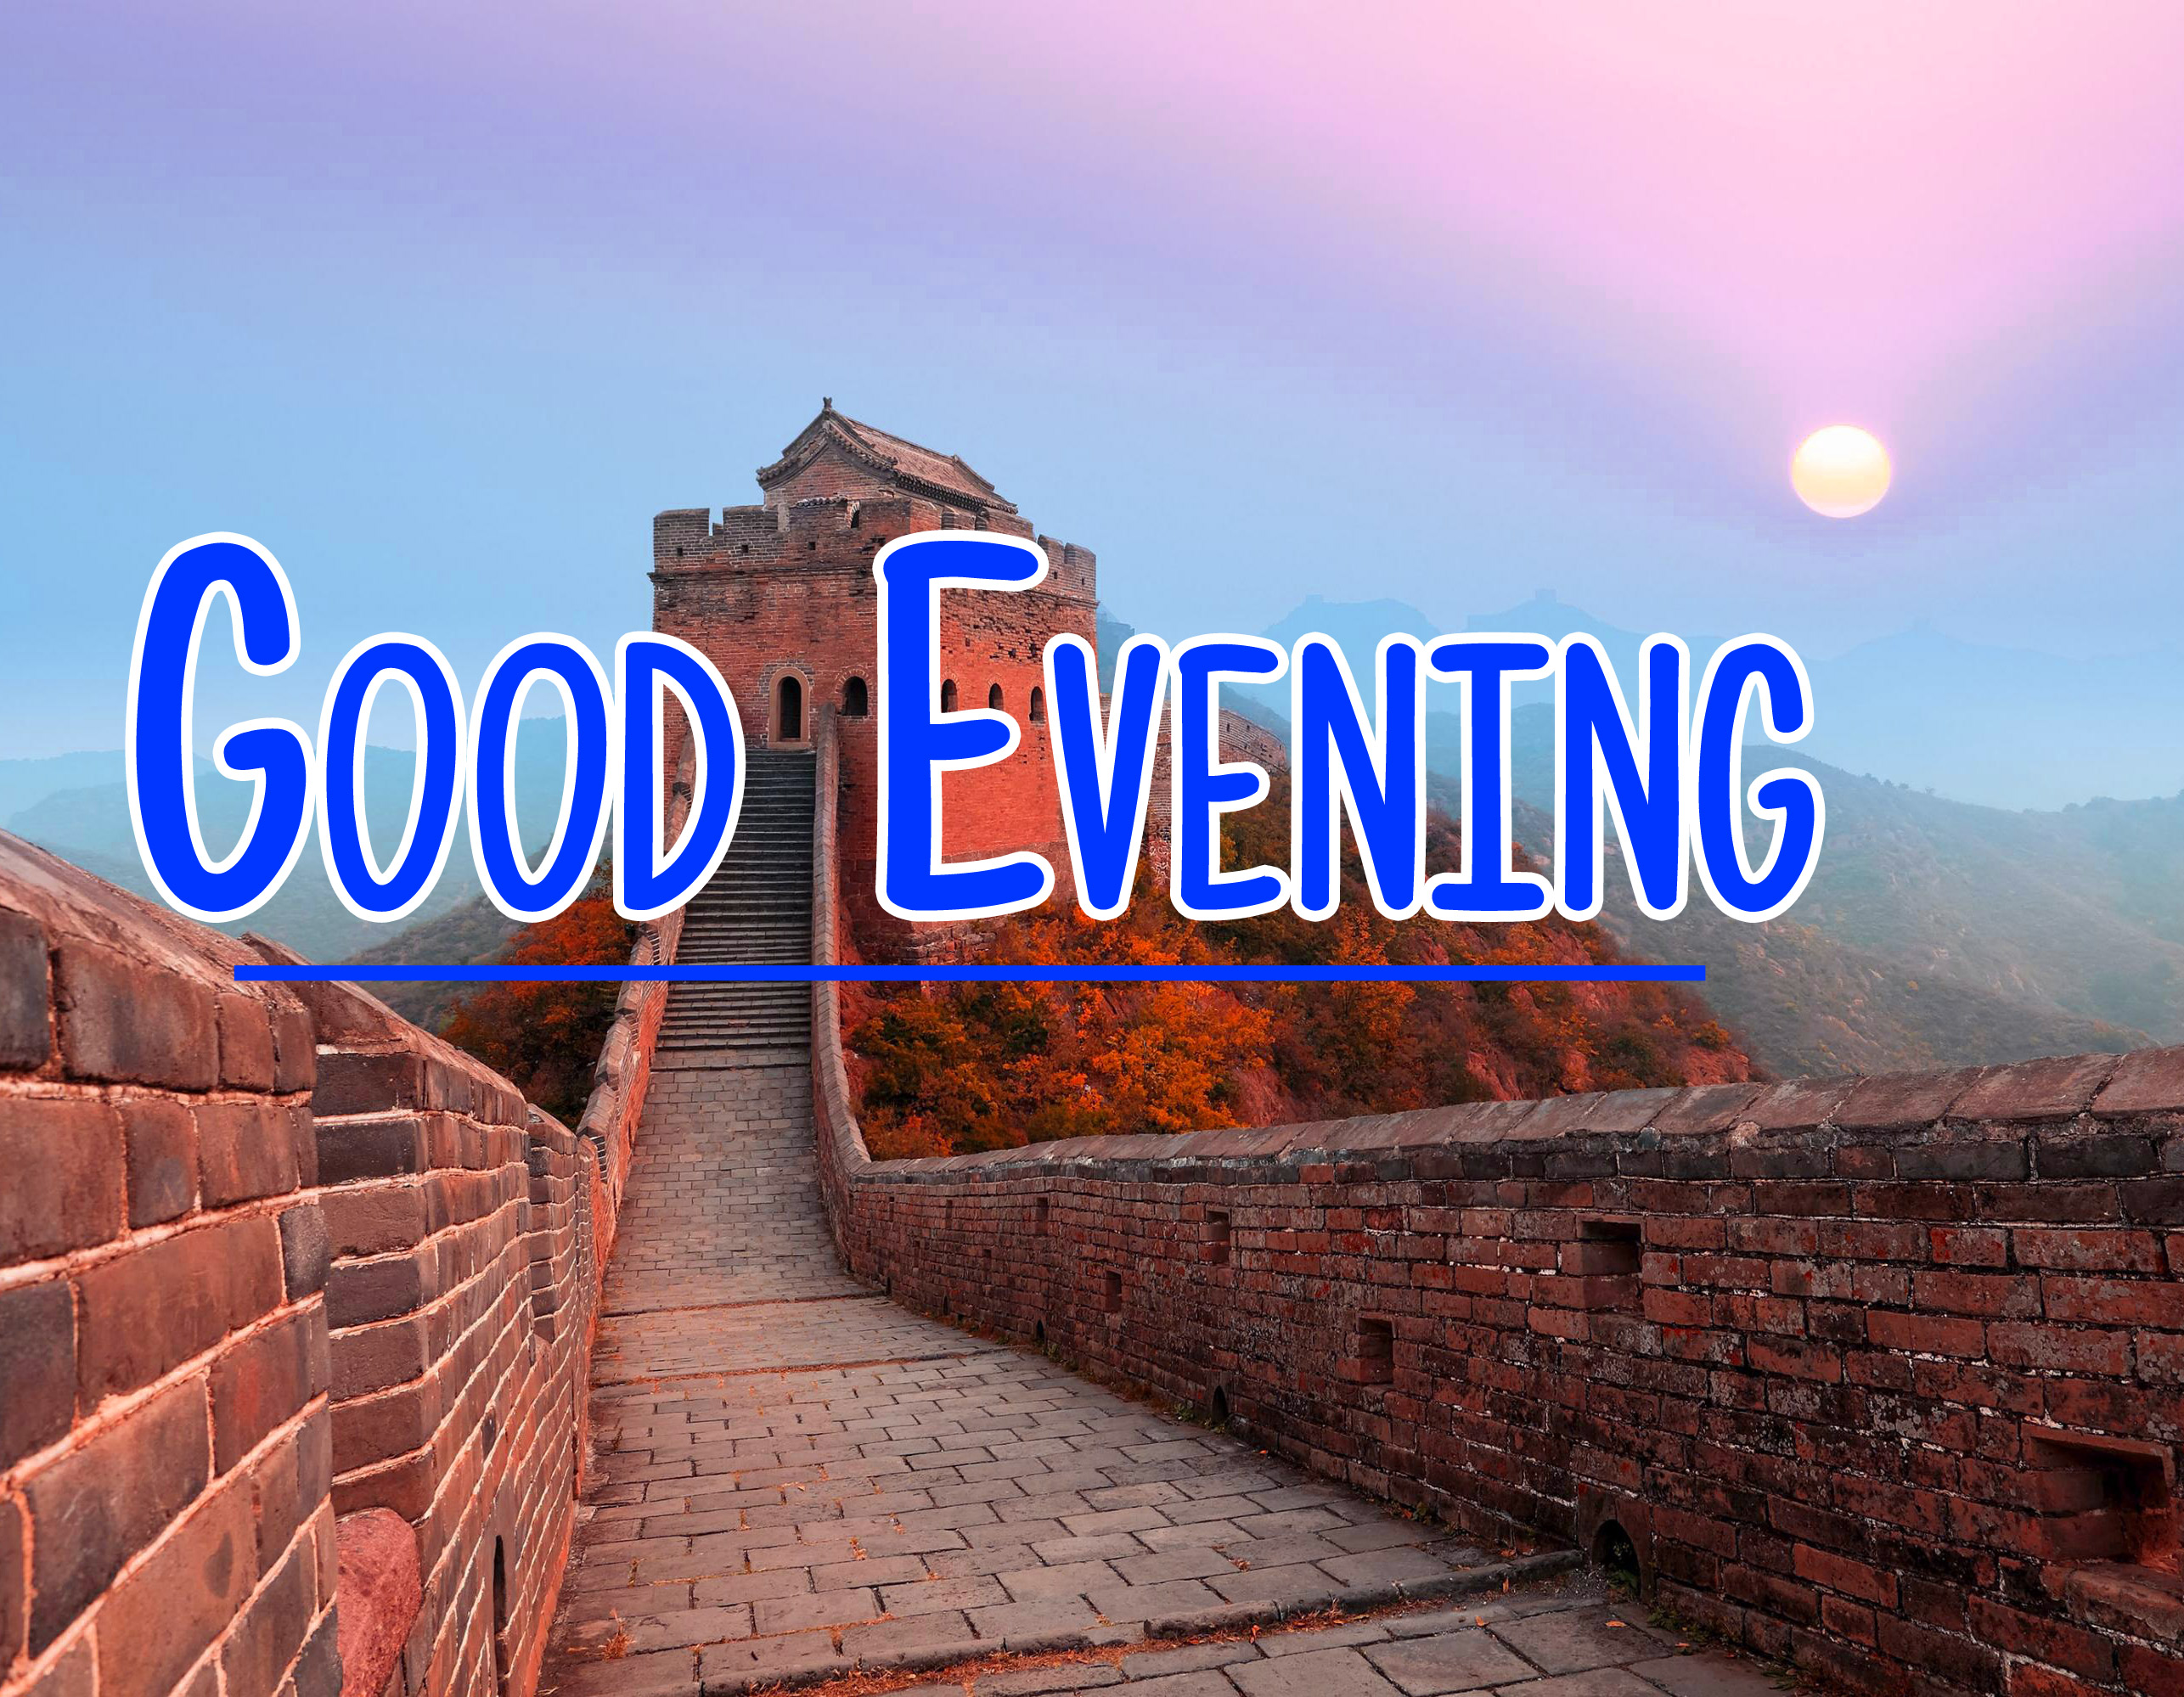 Good Evening Wishes Pics Free Download